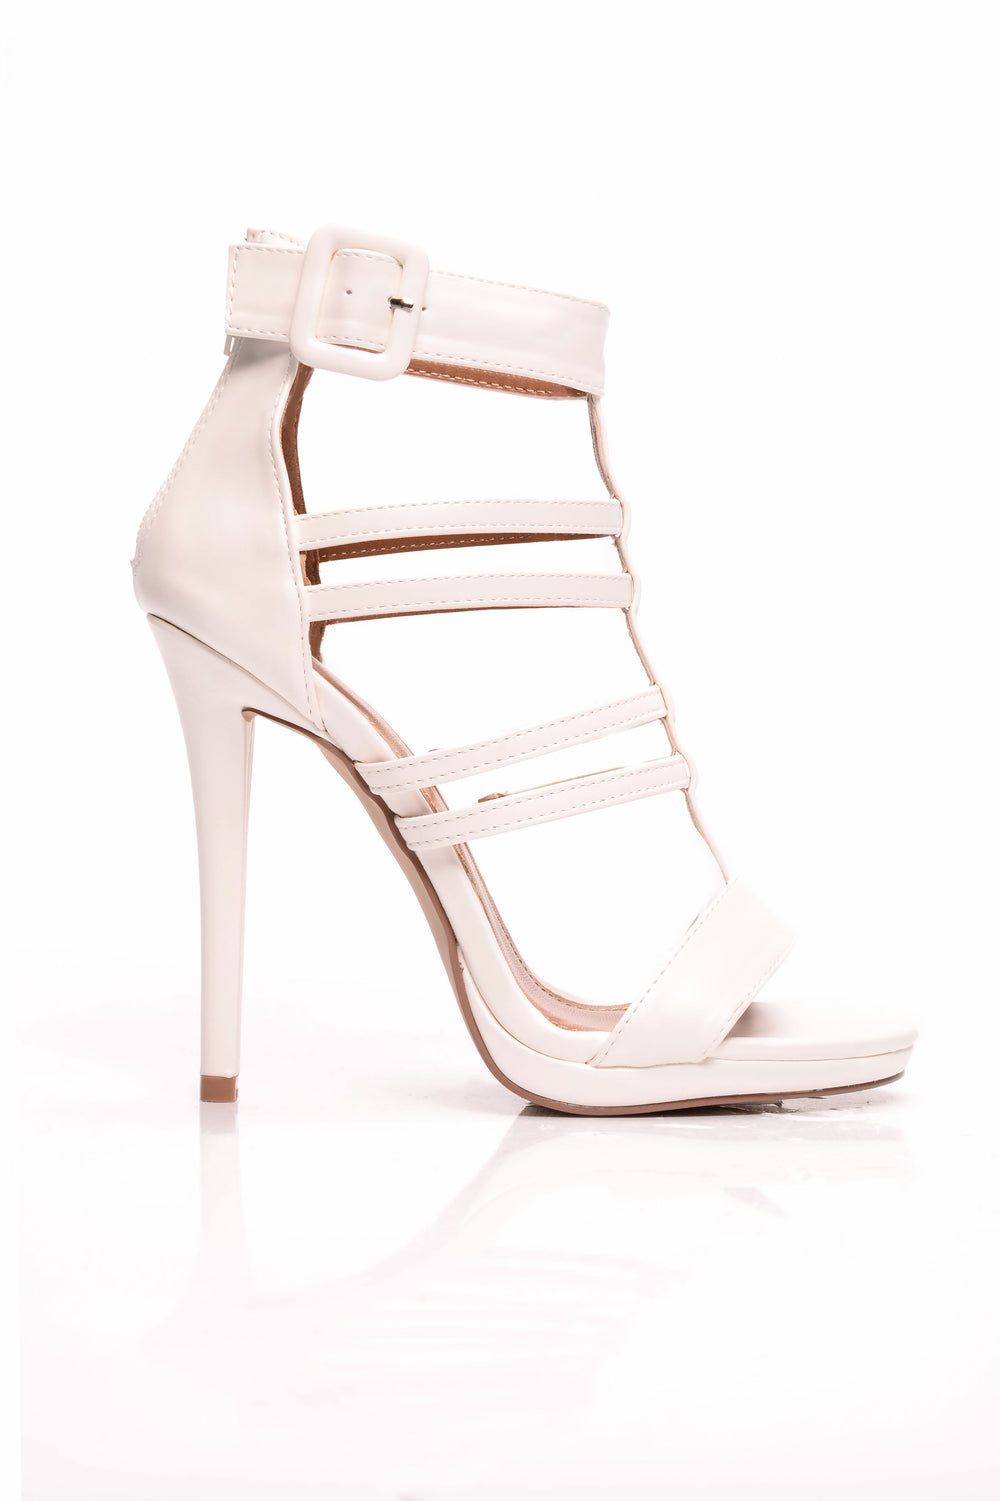 Look The Other Way Heel - White